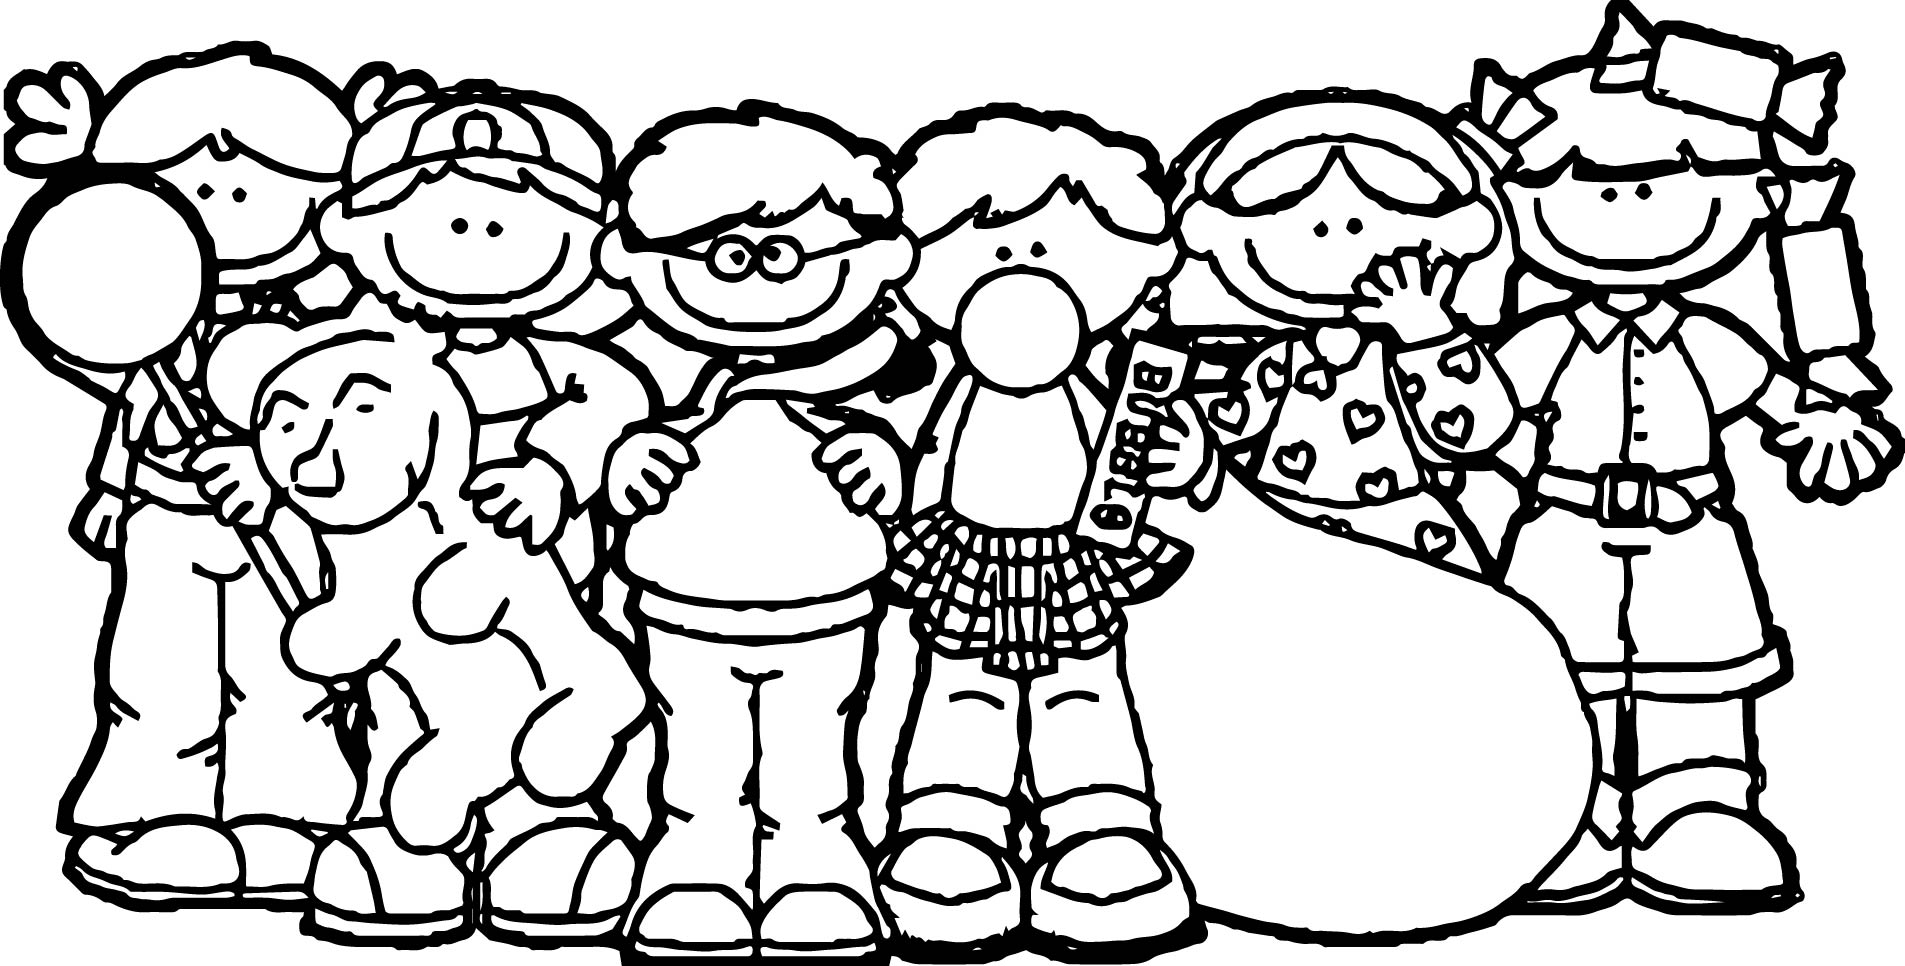 coloring for grade 3 coloring pages for third graders top coloring pages coloring for 3 grade